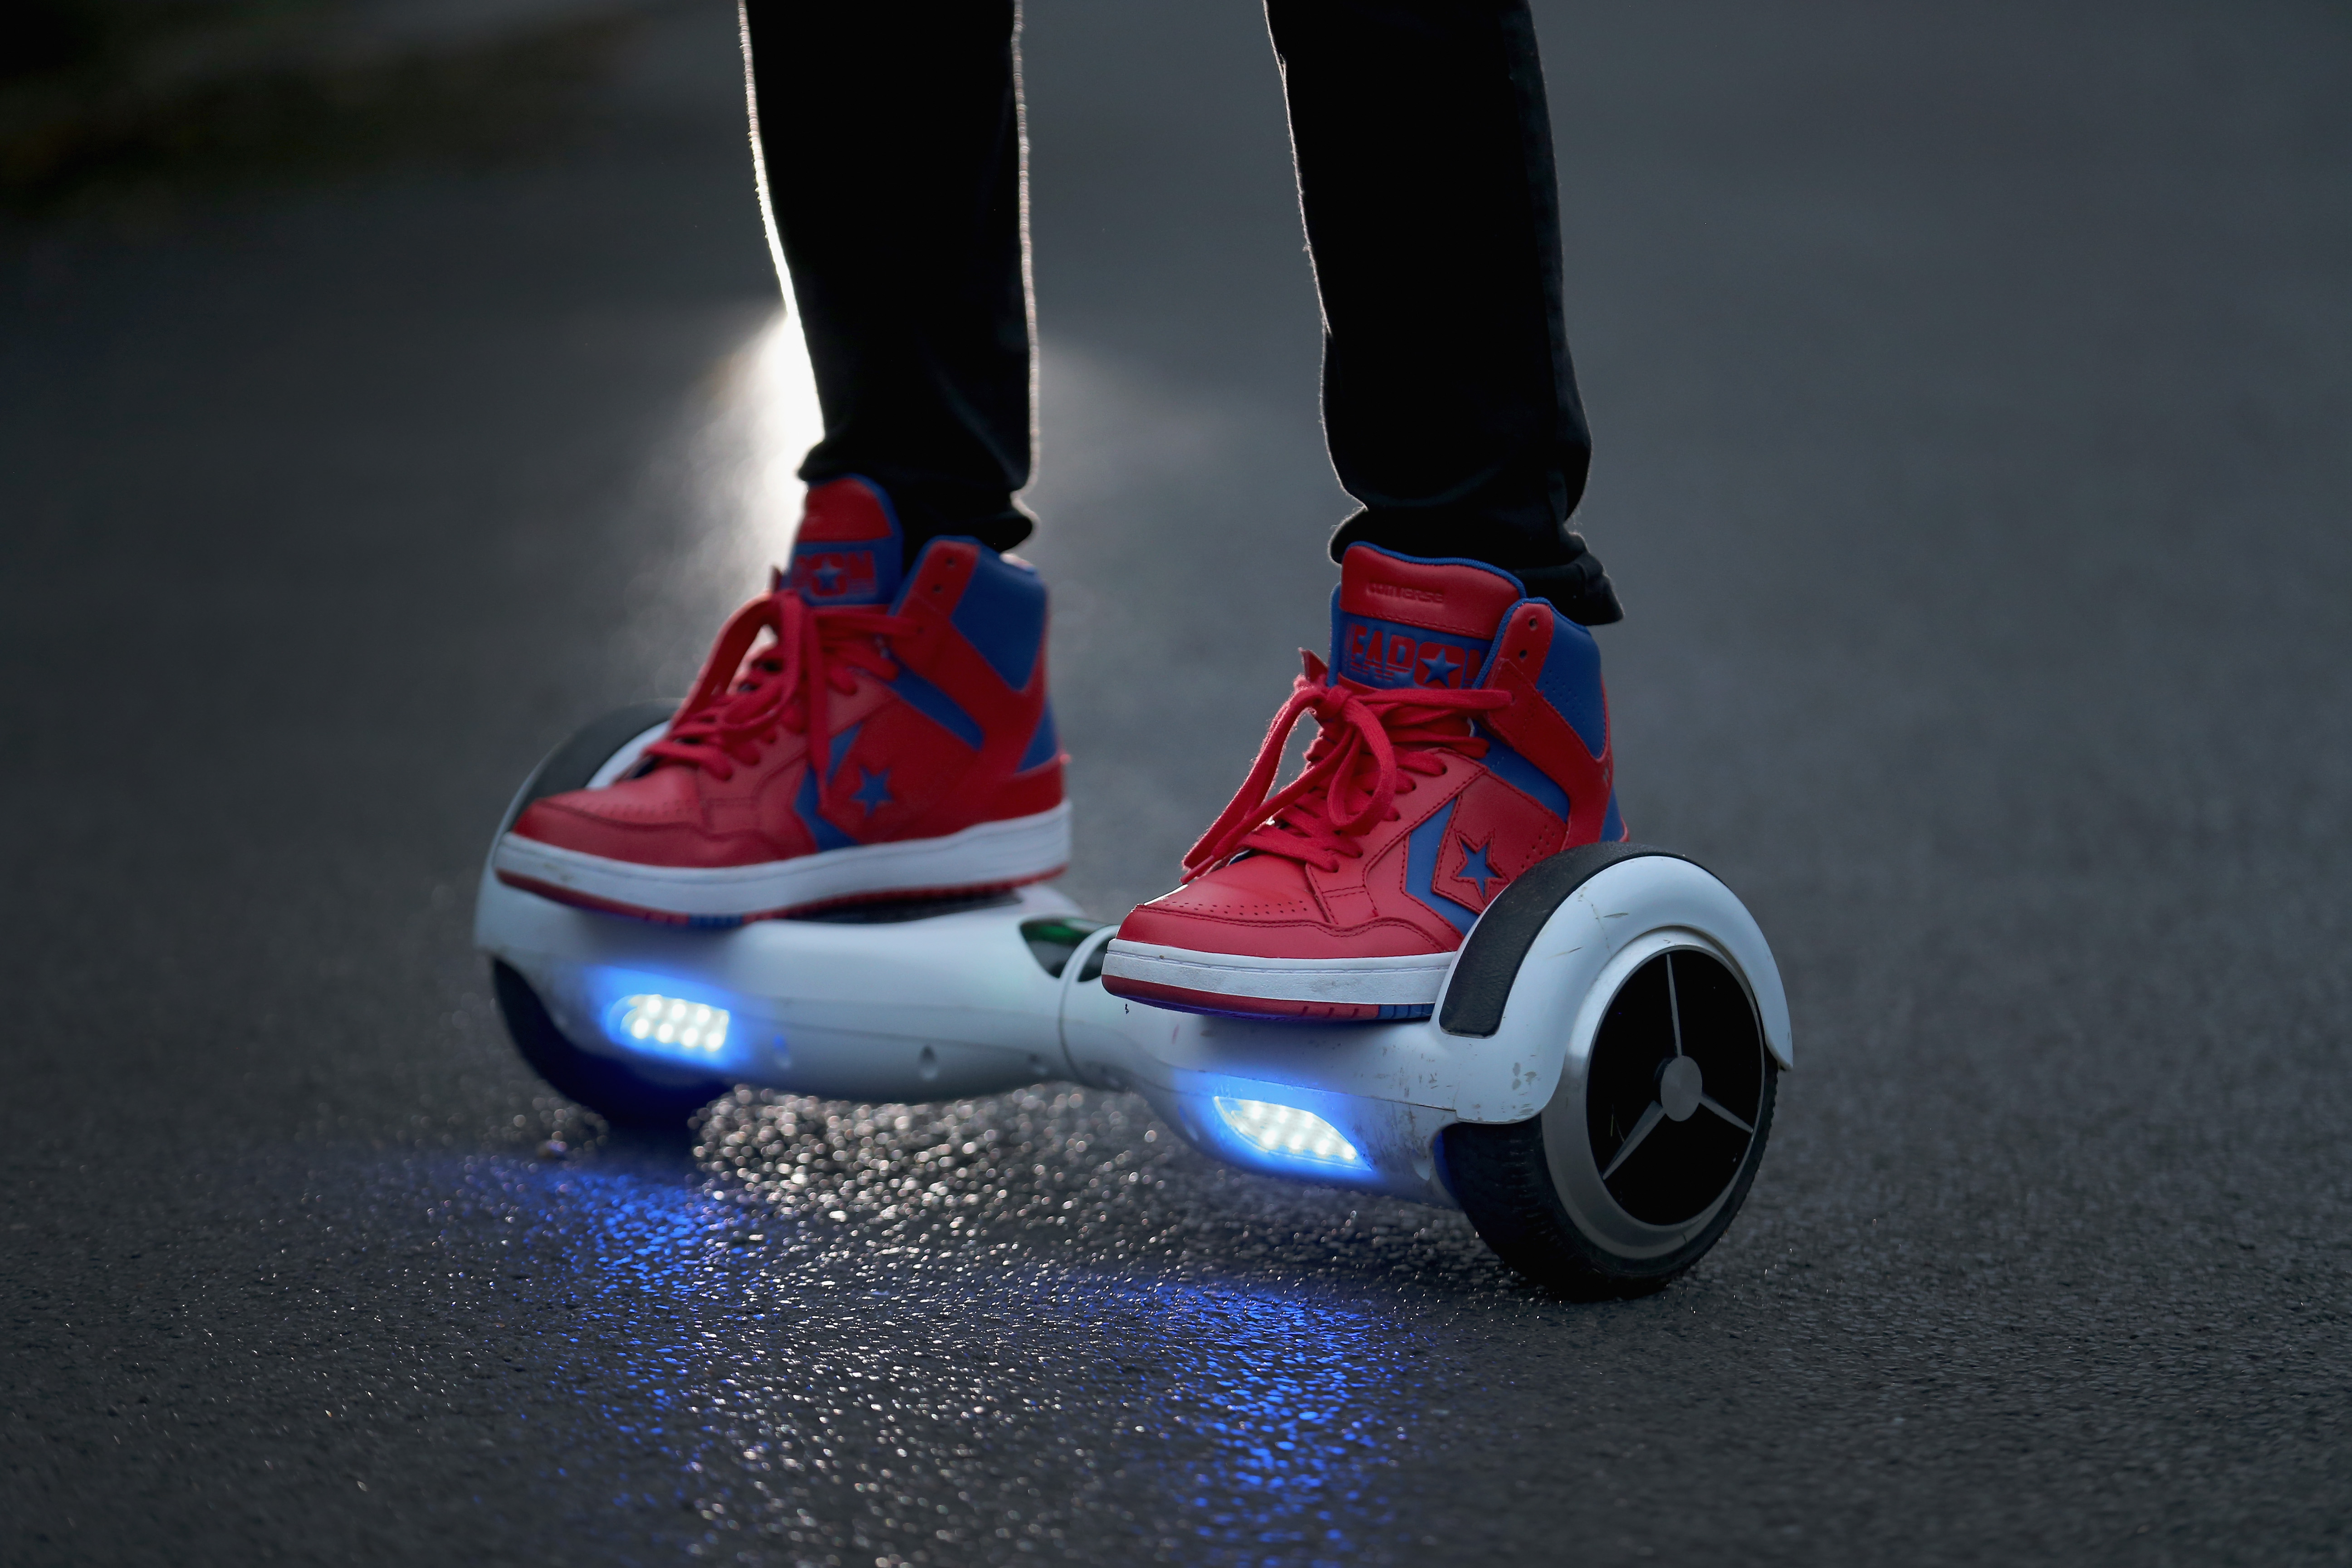 A rider on a hoverboard, which are also known as self-balancing scooters and balance boards, in Knutsford, England, Oct. 13, 2015.